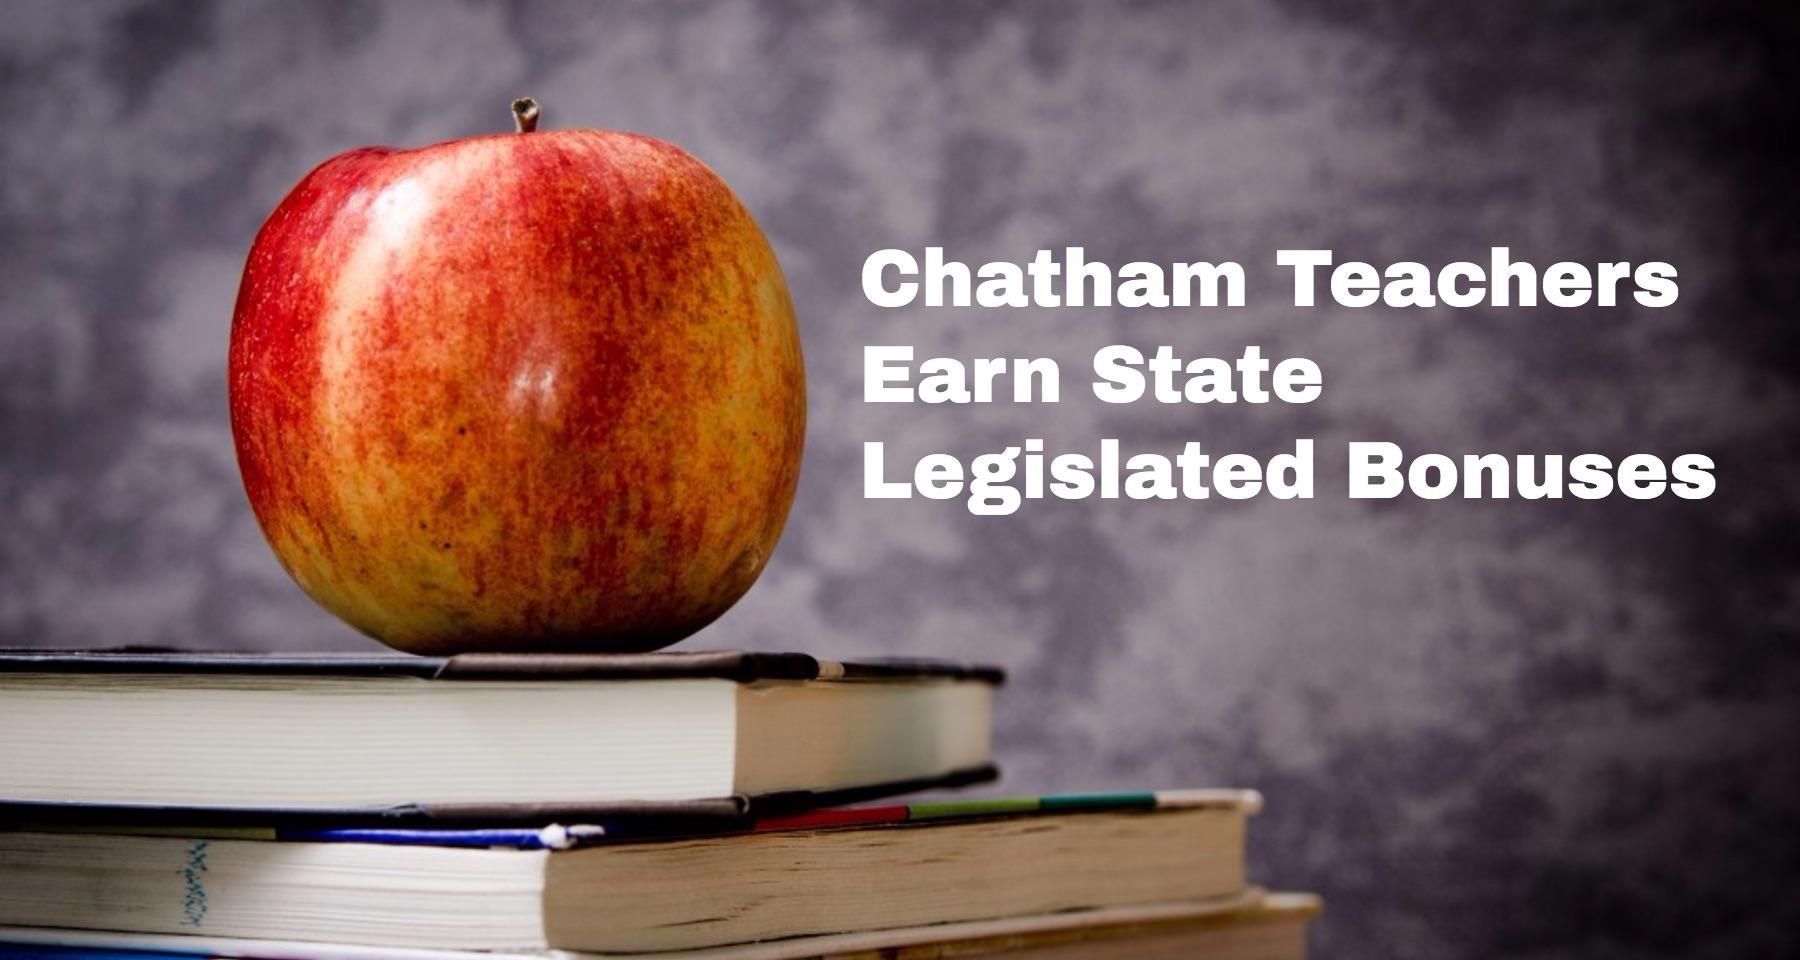 Chatham Teachers Earn State Legislated Bonuses